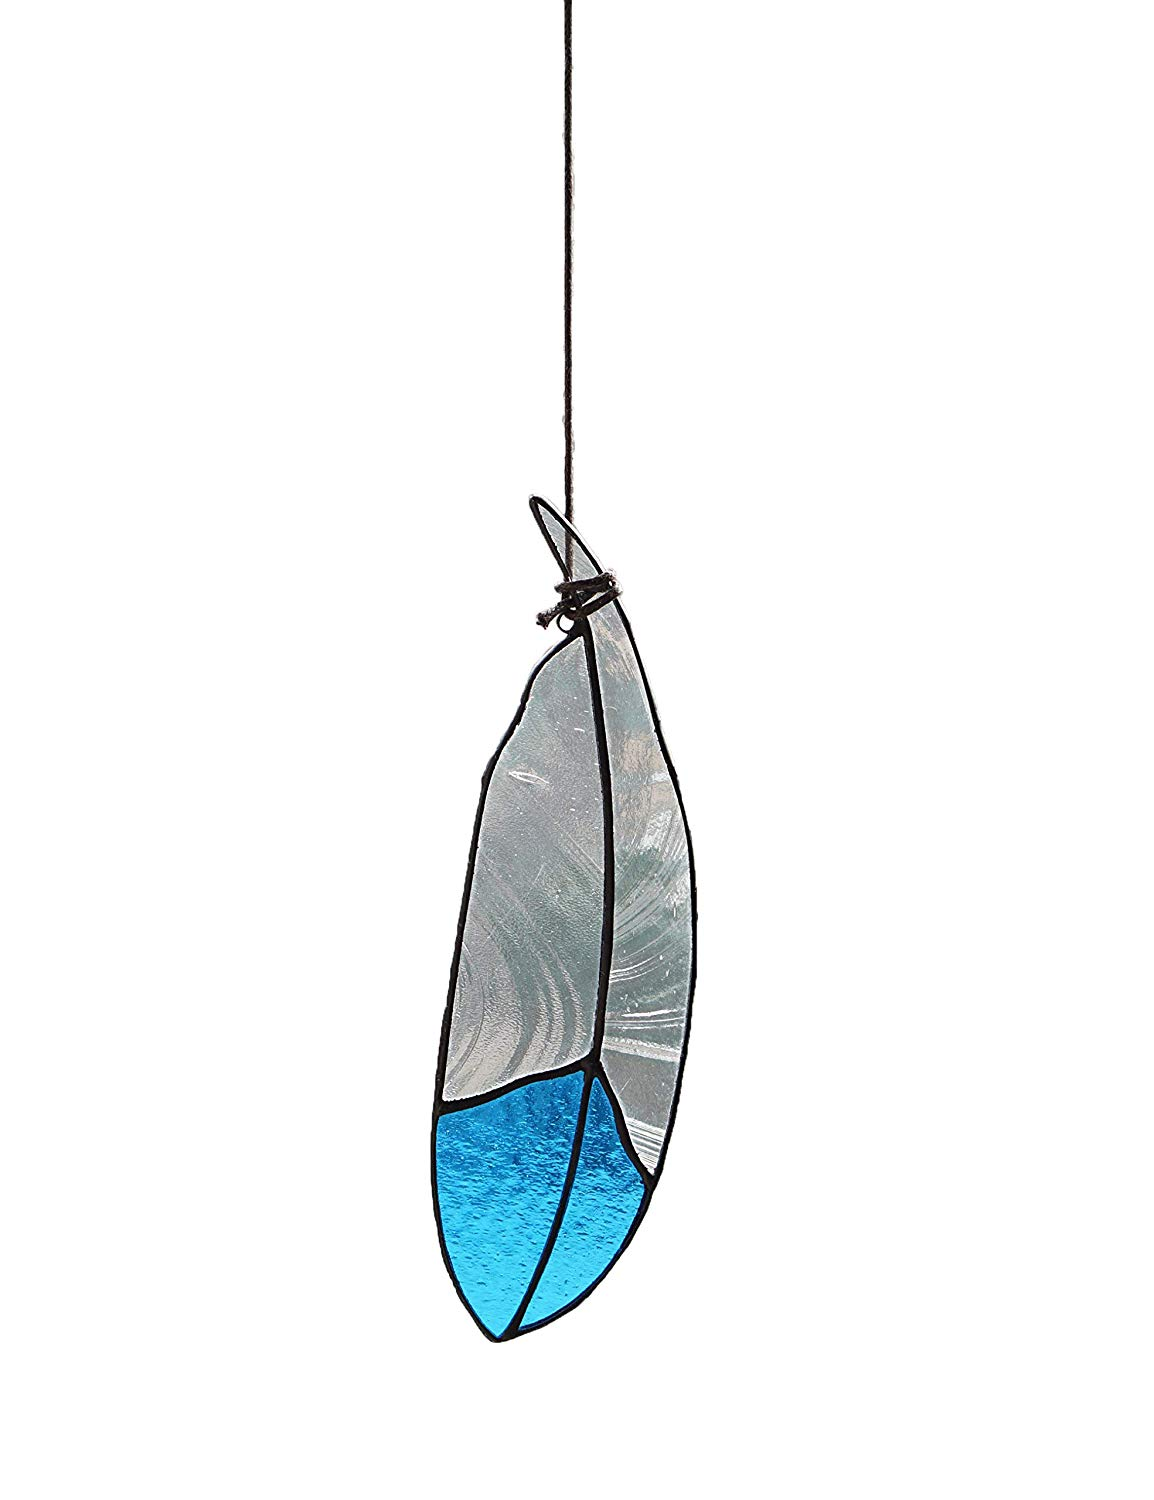 Stained Glass Window Hangings Window Decorative Ornaments Stained Glass Feather Glass SunCatcher for Window Treatment, 7.1'' Inch (Blue)